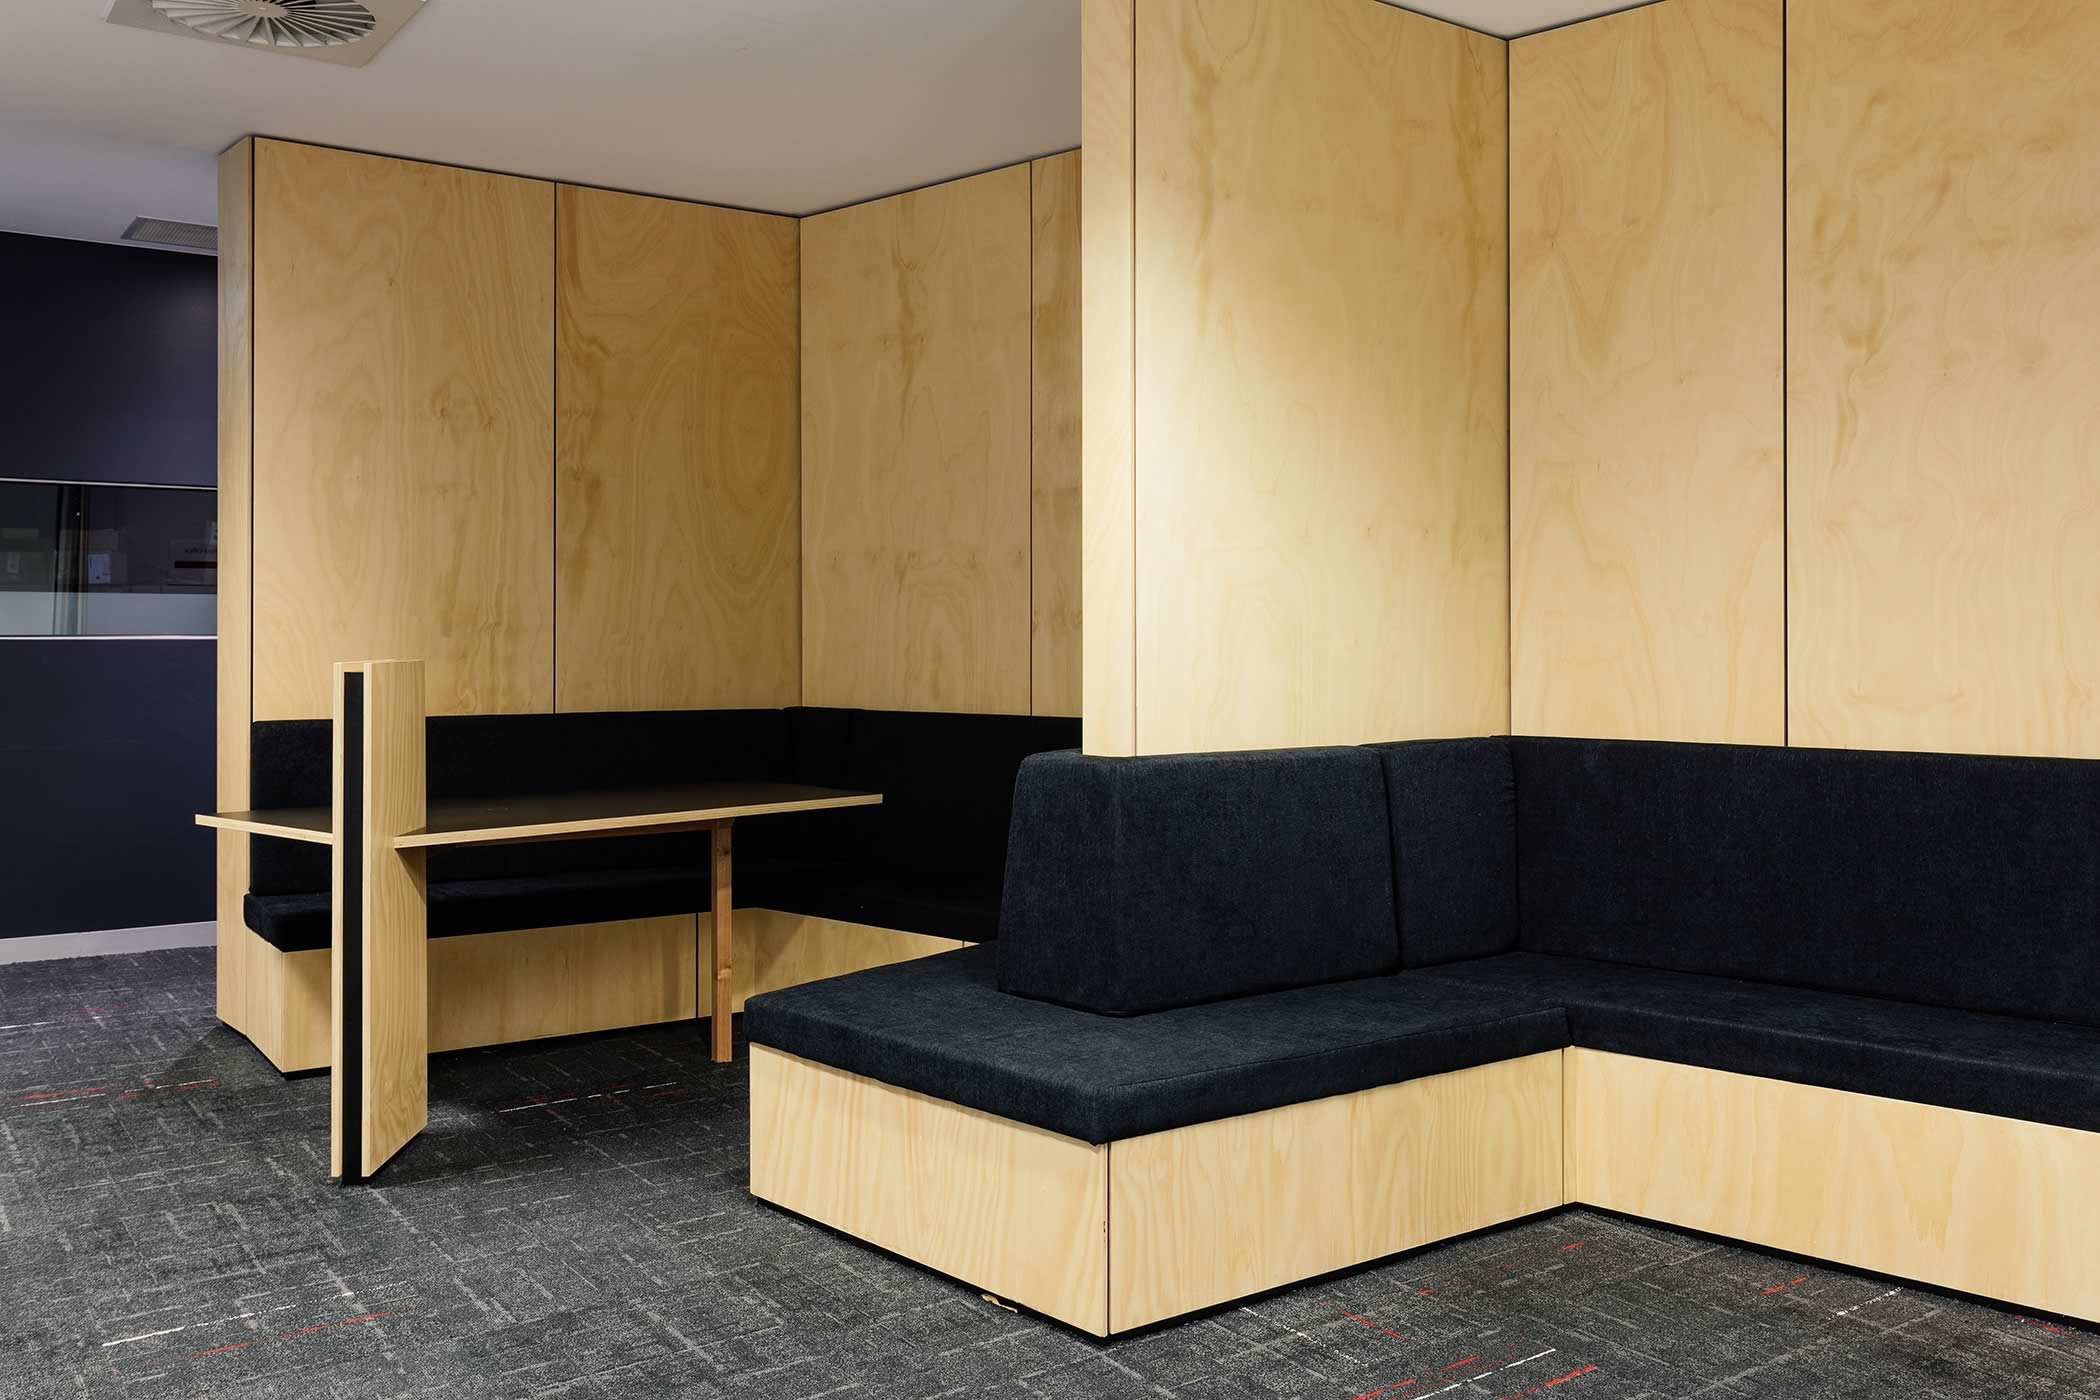 The Media School – University of Tasmania: Built–in alcove seating introduces natural timber for a friendly environment where students congregate for pre and post lesson discussion. Photo by Adam Gibson.